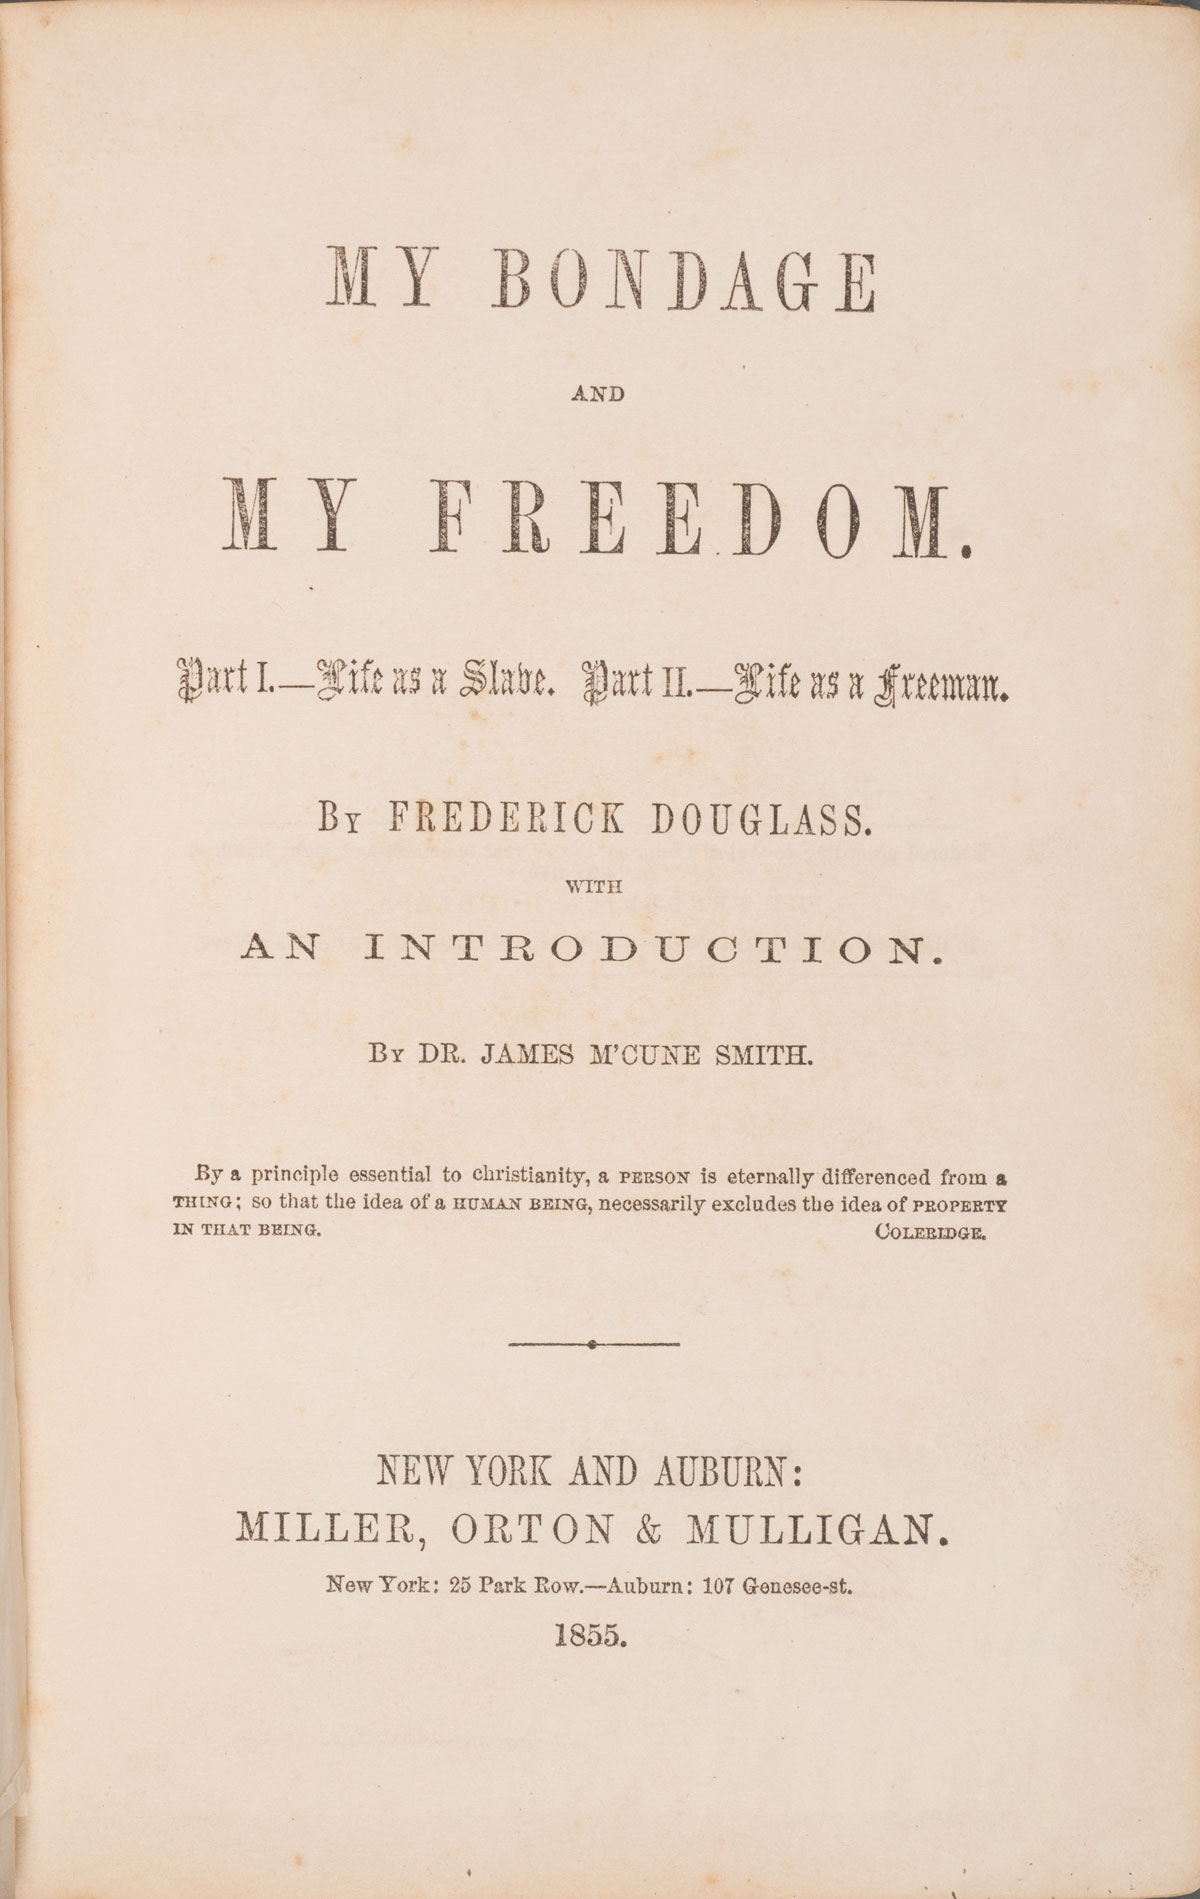 a research paper on frederick douglass Free frederick douglas papers, essays, and research papers.